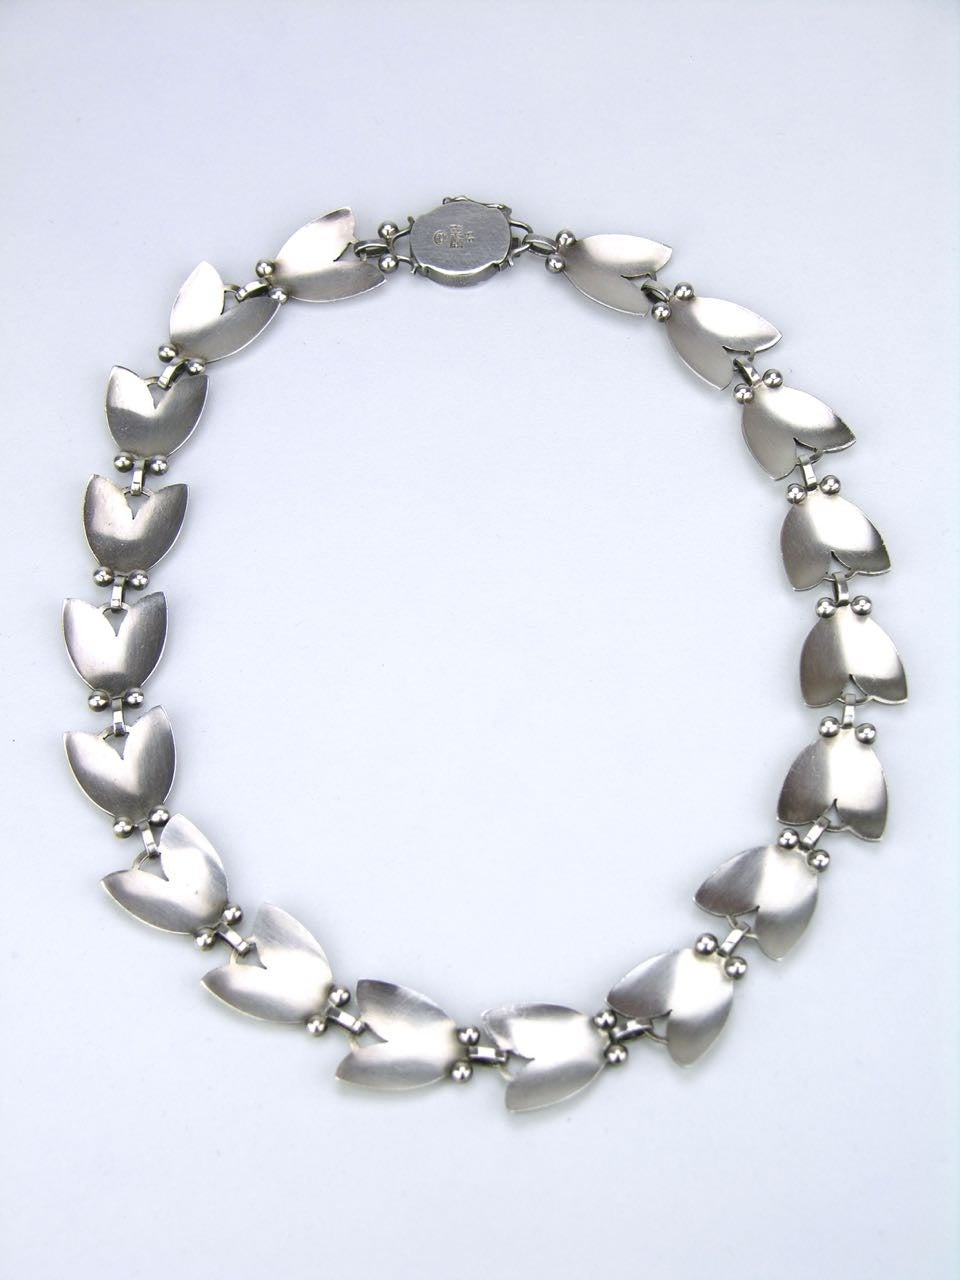 georg jensen silver tulip necklace at 1stdibs